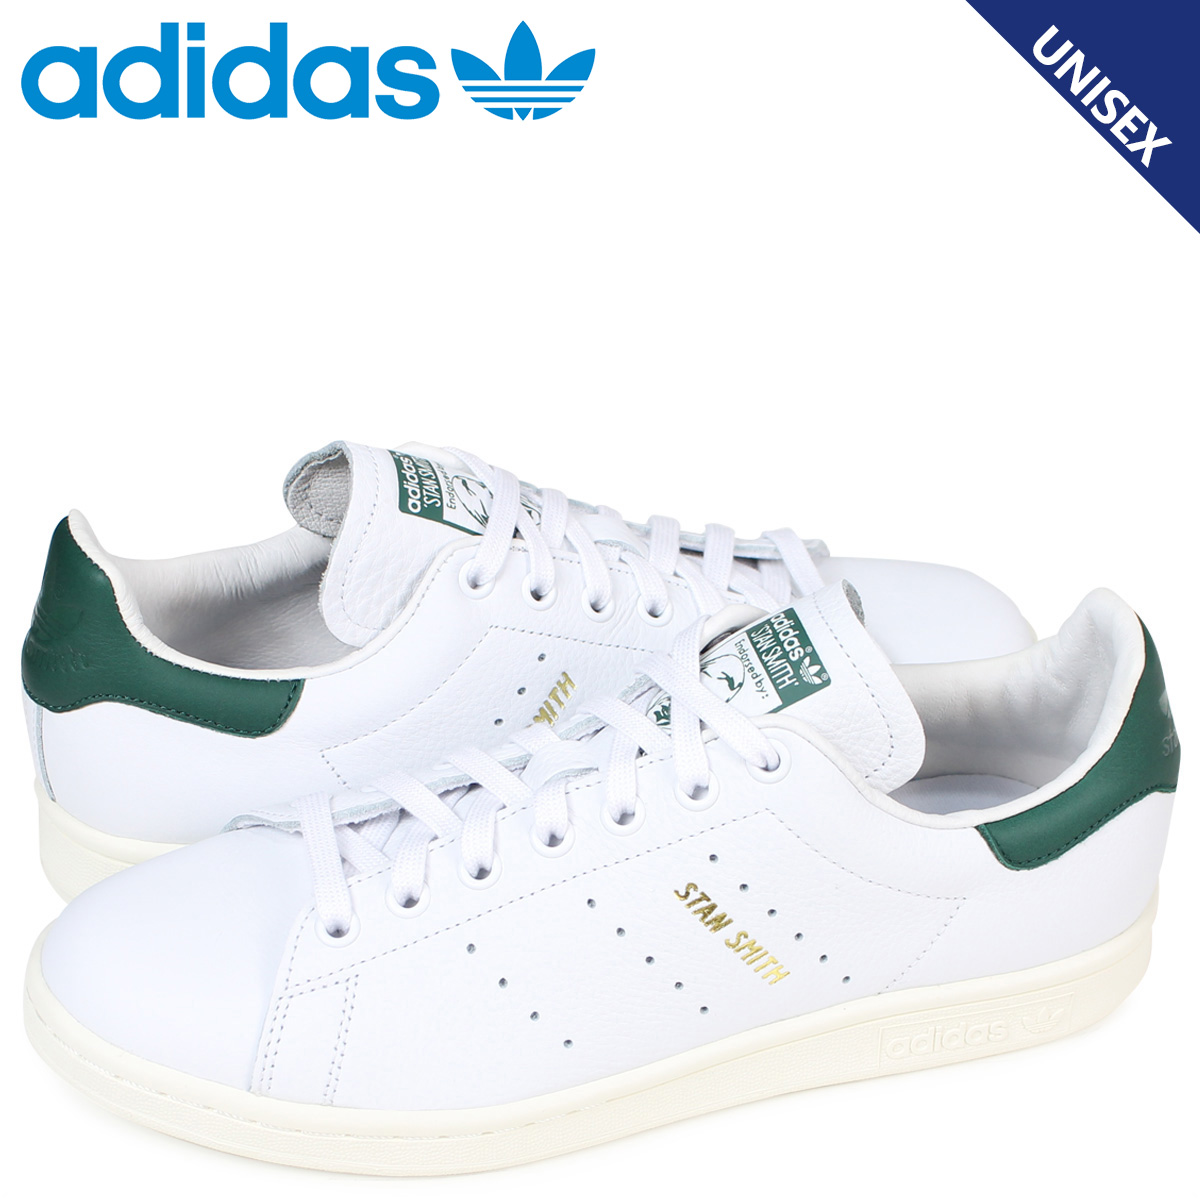 SneaK Online Shop | Rakuten Global Market: Adidas Stan Smith adidas originals sneakers STAN SMITH men CQ2871 shoes white [load planned Shinnyu load in reservation product 12/26 containing]